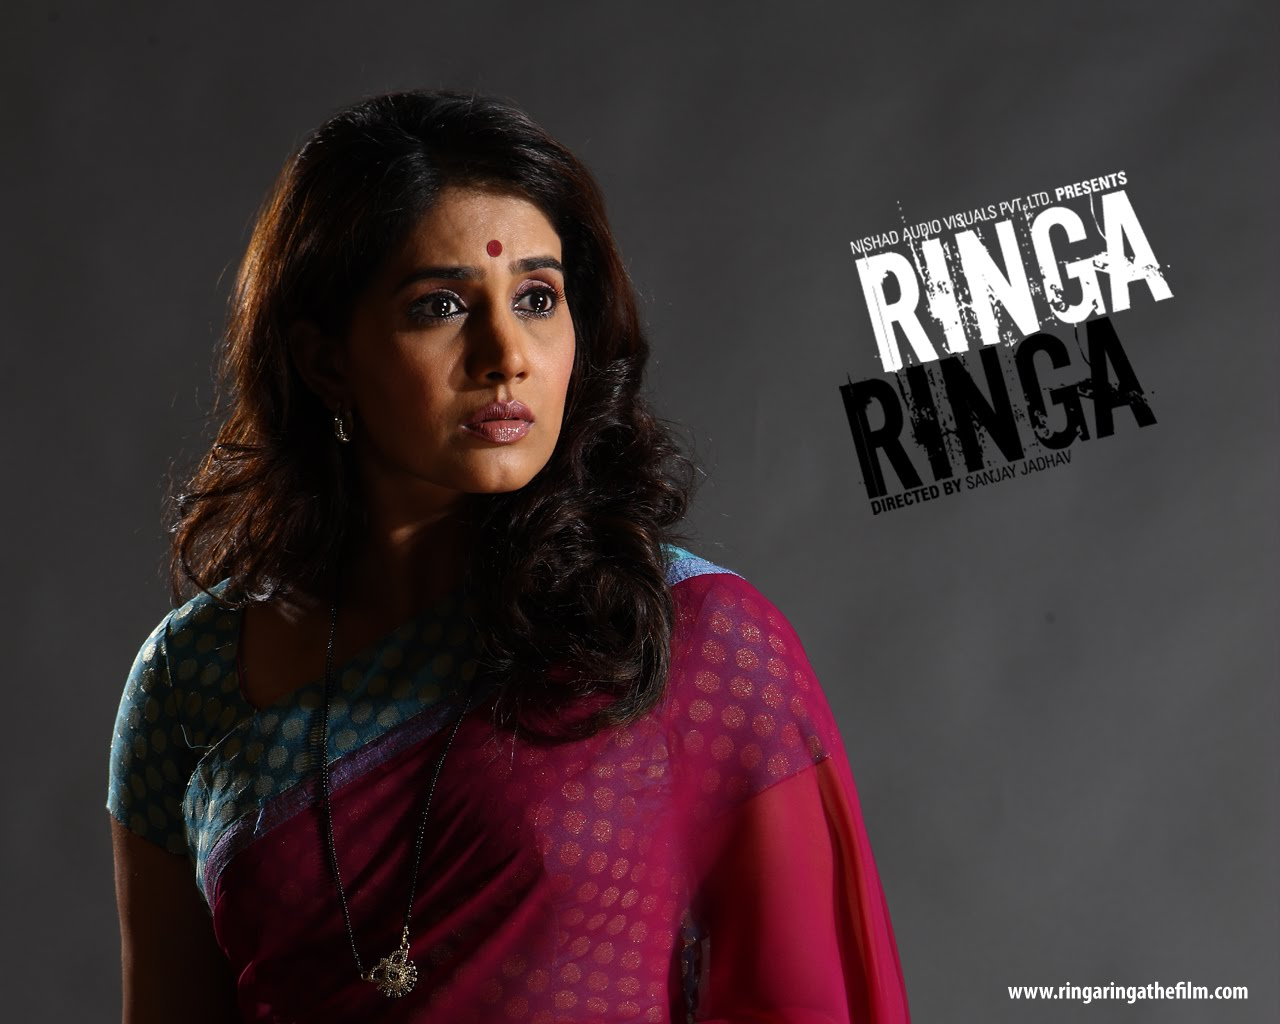 http://1.bp.blogspot.com/_zI0r7axP1R0/TI9Y-BN_eUI/AAAAAAAAEKI/Gl6LsGtiv68/s1600/Marathi-Movie-Wallpapers.jpg